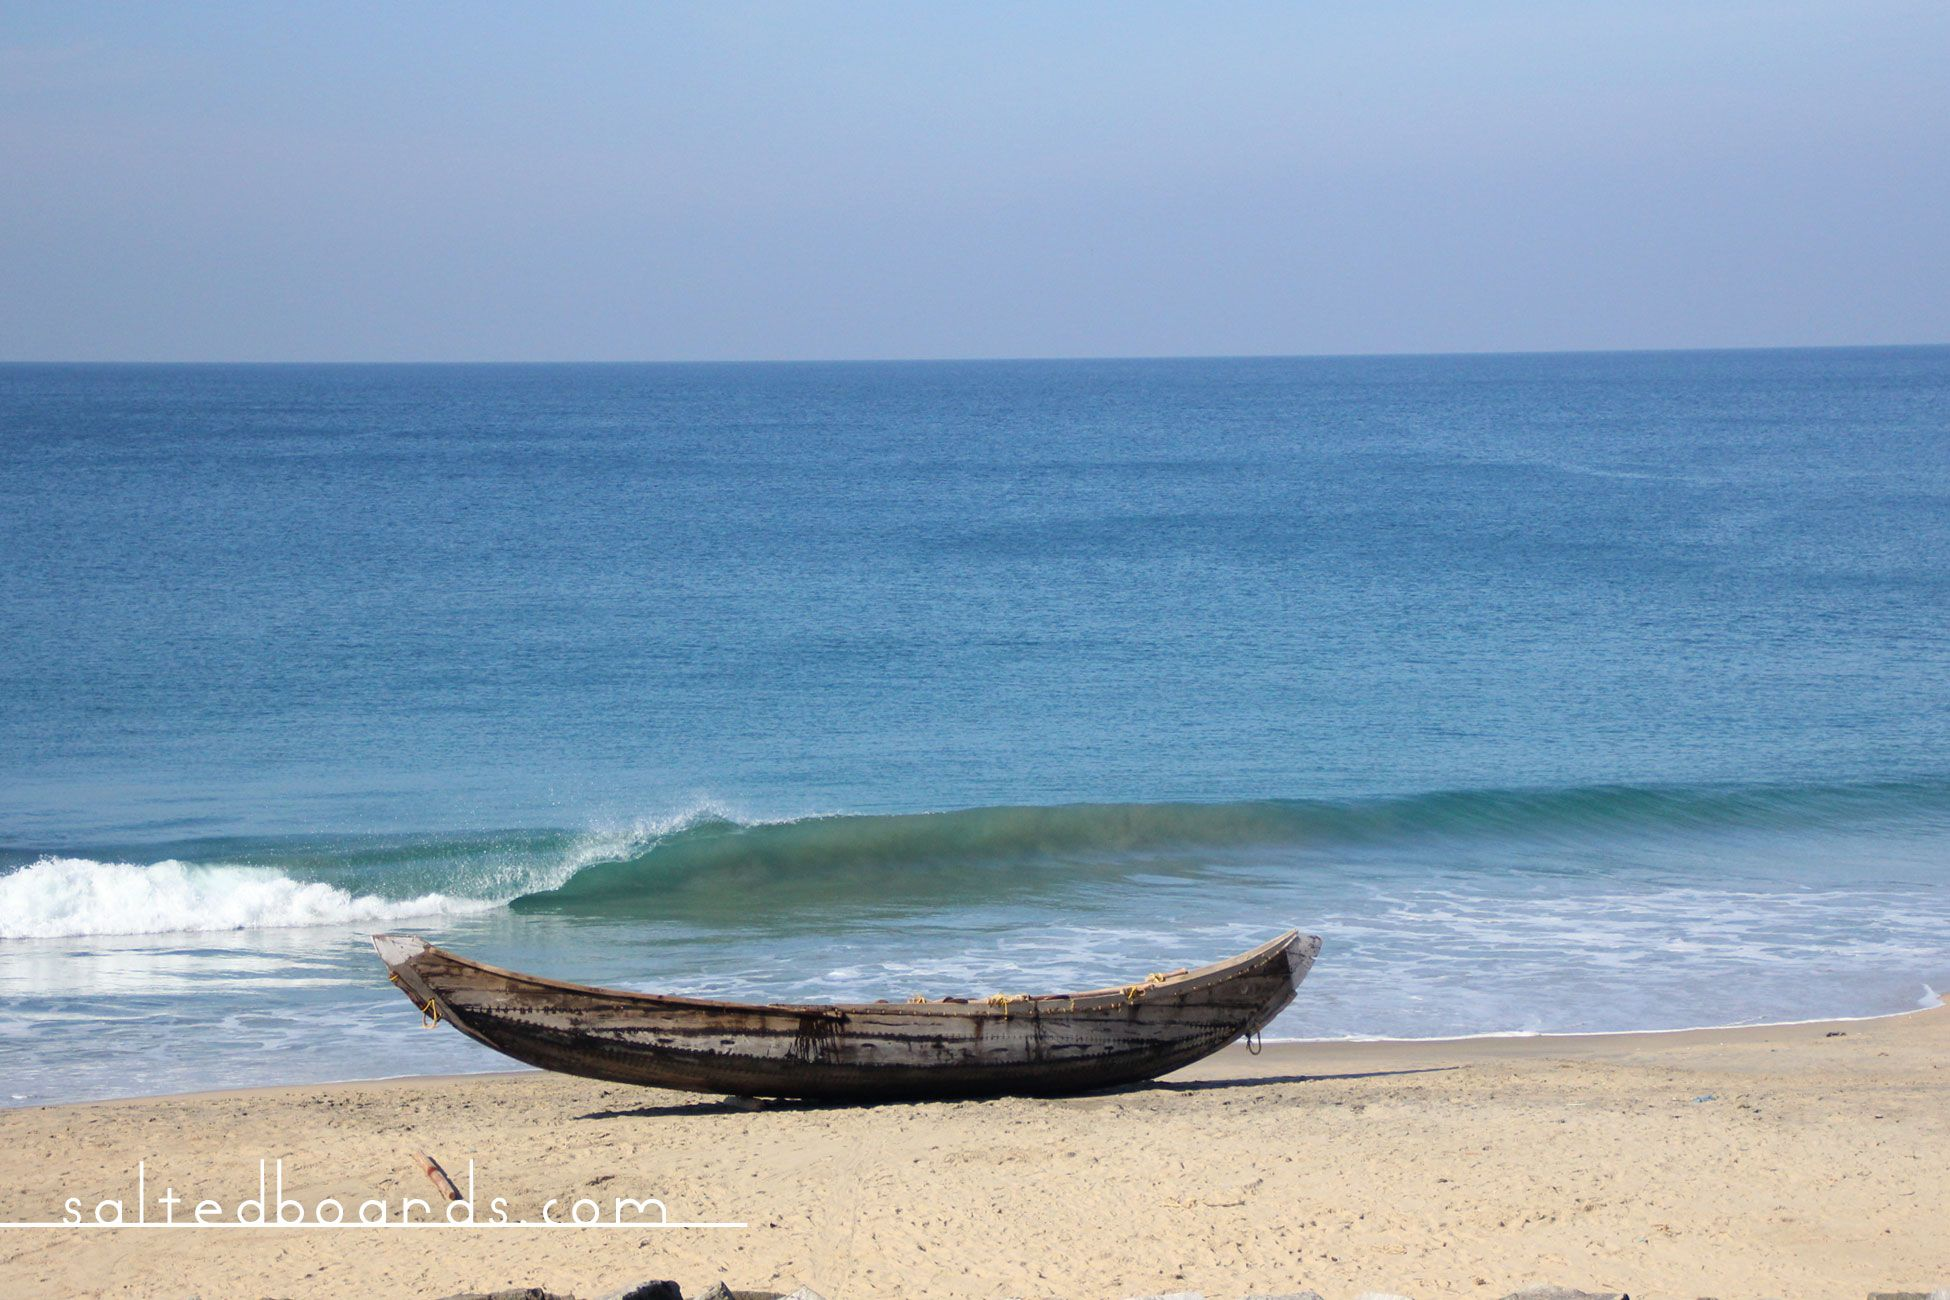 Salted Boards | Surfing pointbreaks in Varkala, India #surf #wave #ocean #varkala #kerala #india #landscape #seascape #boat #fishing